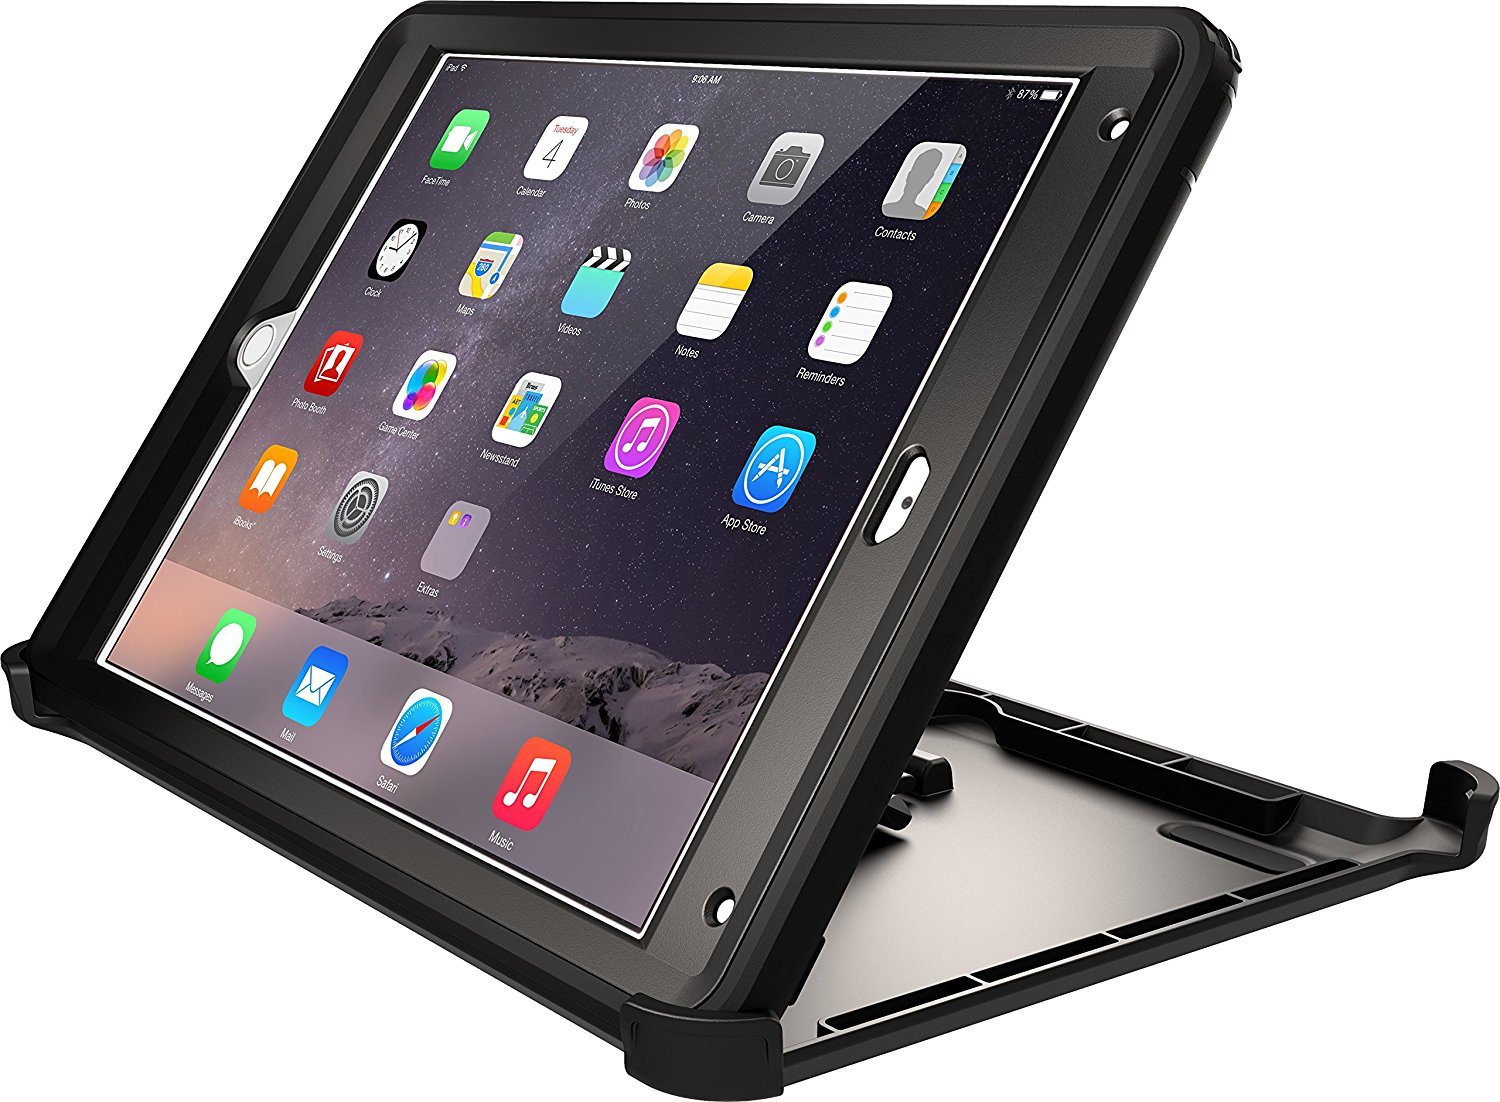 new concept 1182b fd582 Details about OtterBox Defender Series Case & Stand for iPad Air 2 BLACK